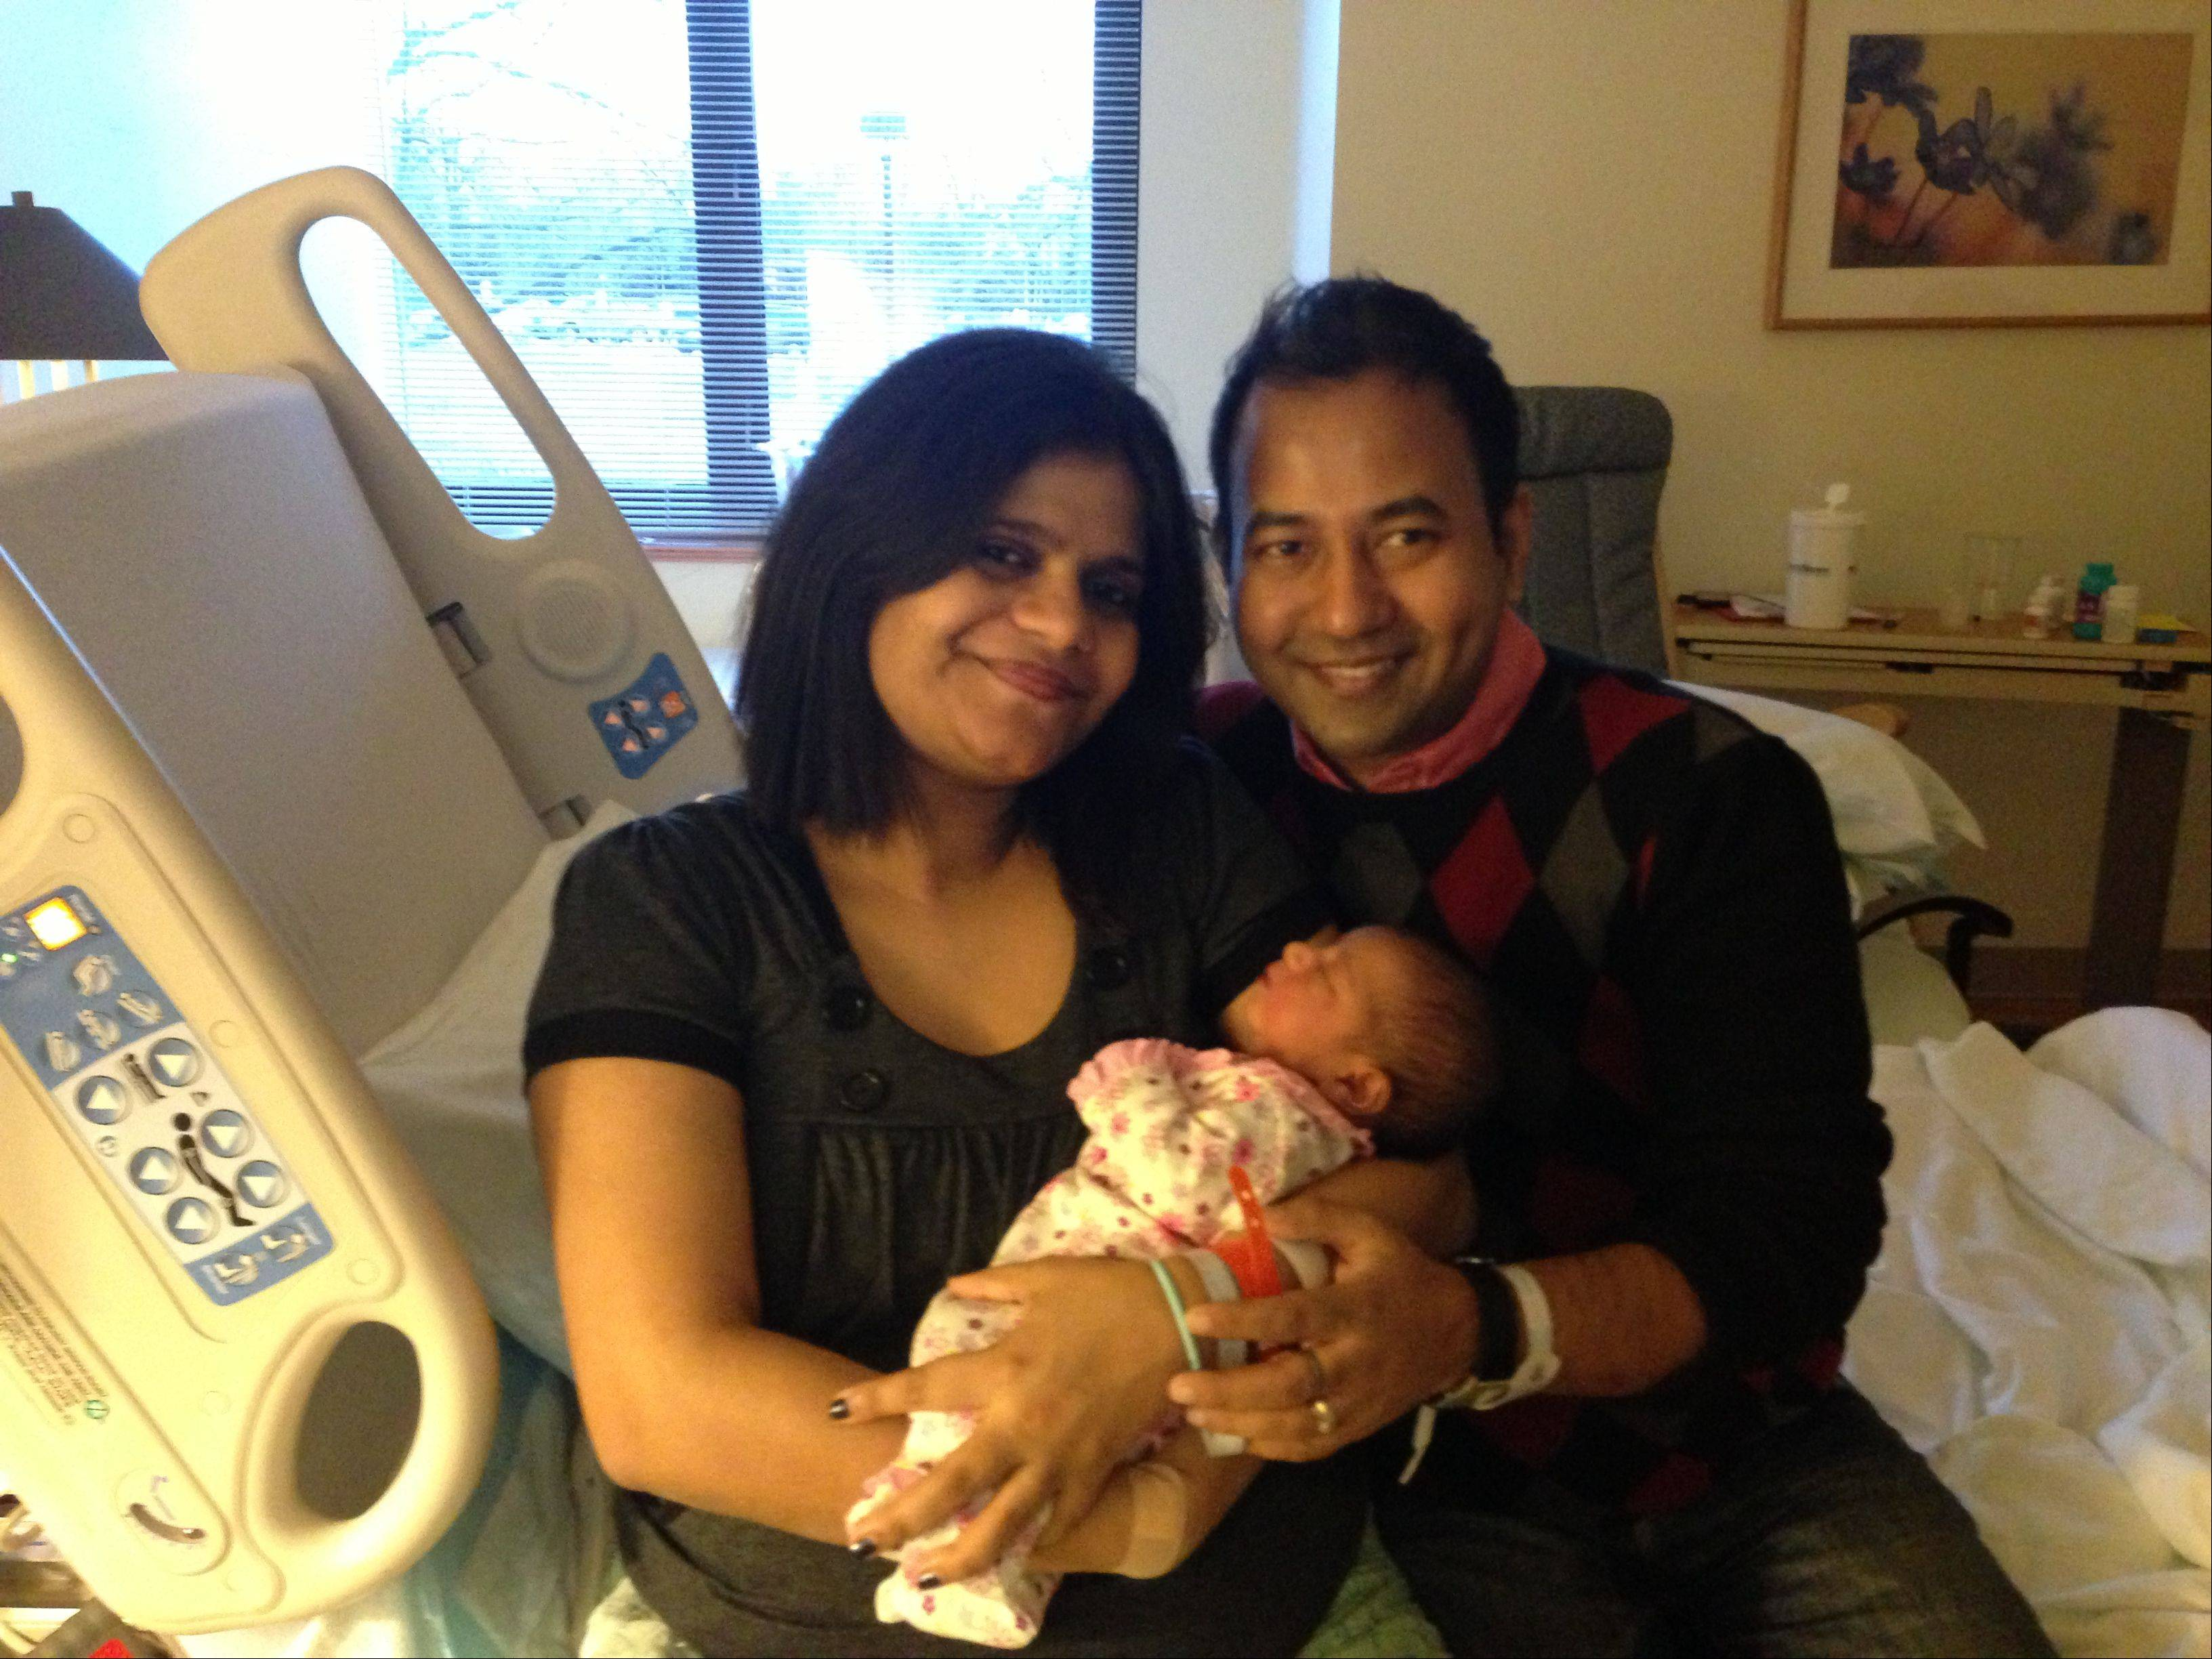 Aindrila Gupta holds her daughter, Naija Niyogi, as dad, Shiladitya Niyogi lends support. The couple's first child was born at 12:39 a.m. at NorthShore Highland Park Hospital, the first of the new year in Lake County.